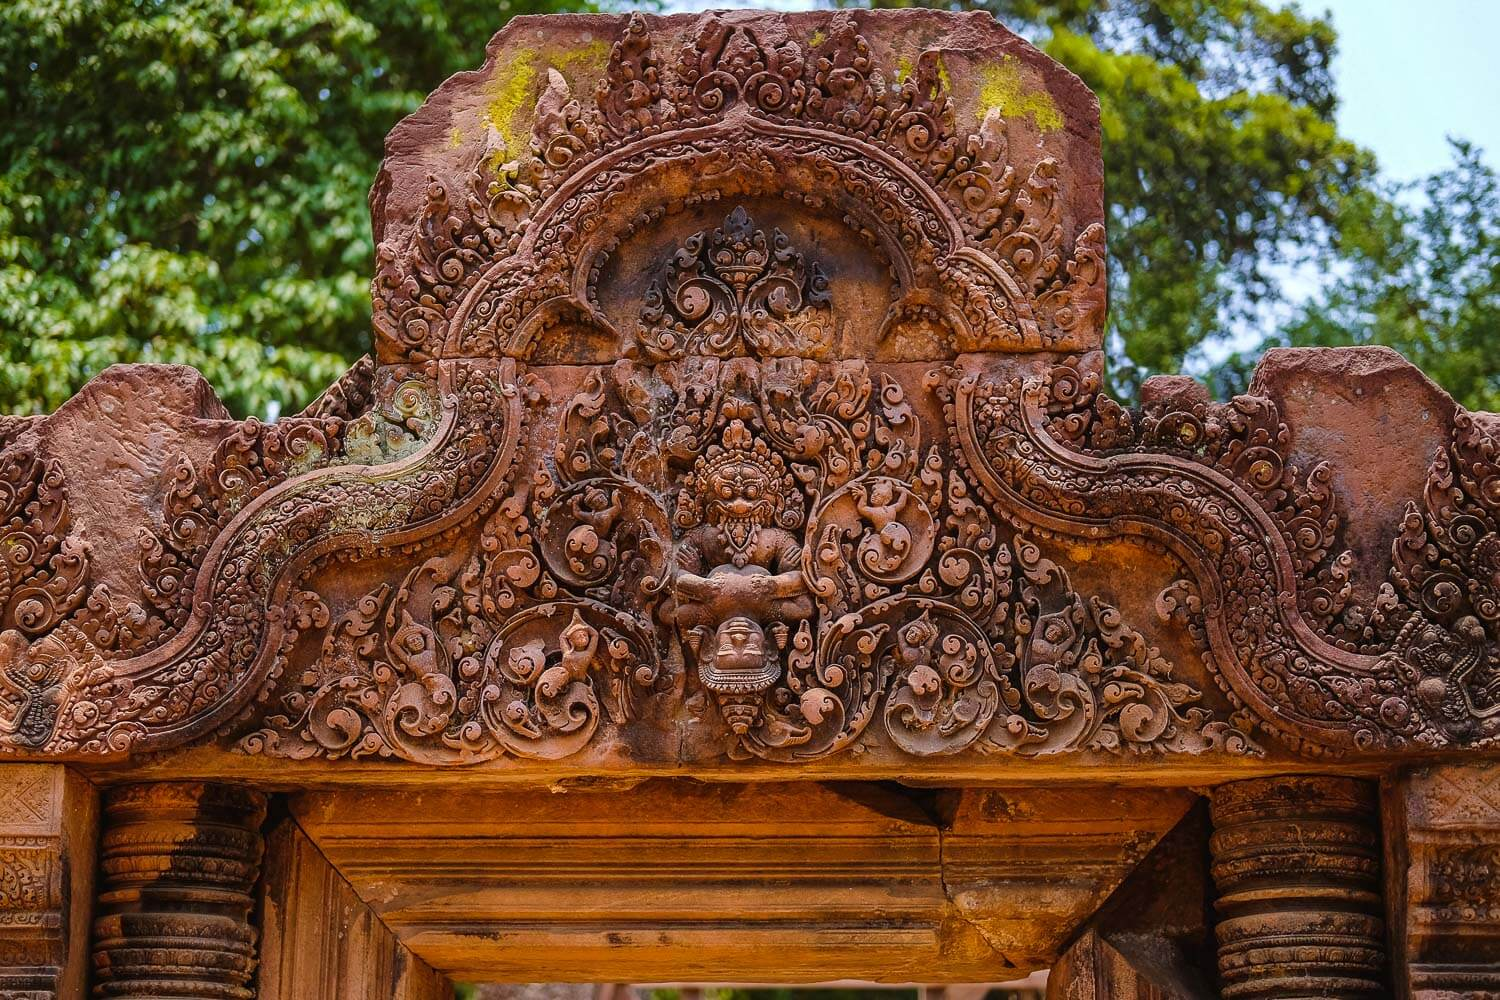 """Intricate carvings above a doorway in Banteay Srei, Siem Reap. Travel photography and guide by © Natasha Lequepeys for """"And Then I Met Yoko"""". #siemreap #banteaysrei #angkorwat #travelguide #travelblog #travelitinerary #itinerary #siemreapitinerary #seasia #cambodia #travelcambodia #travelsiemreap #photoblog #travelblogger #travelphotography #landscapephotography #fujifilm #temples #siemreapprivatetour #atv"""